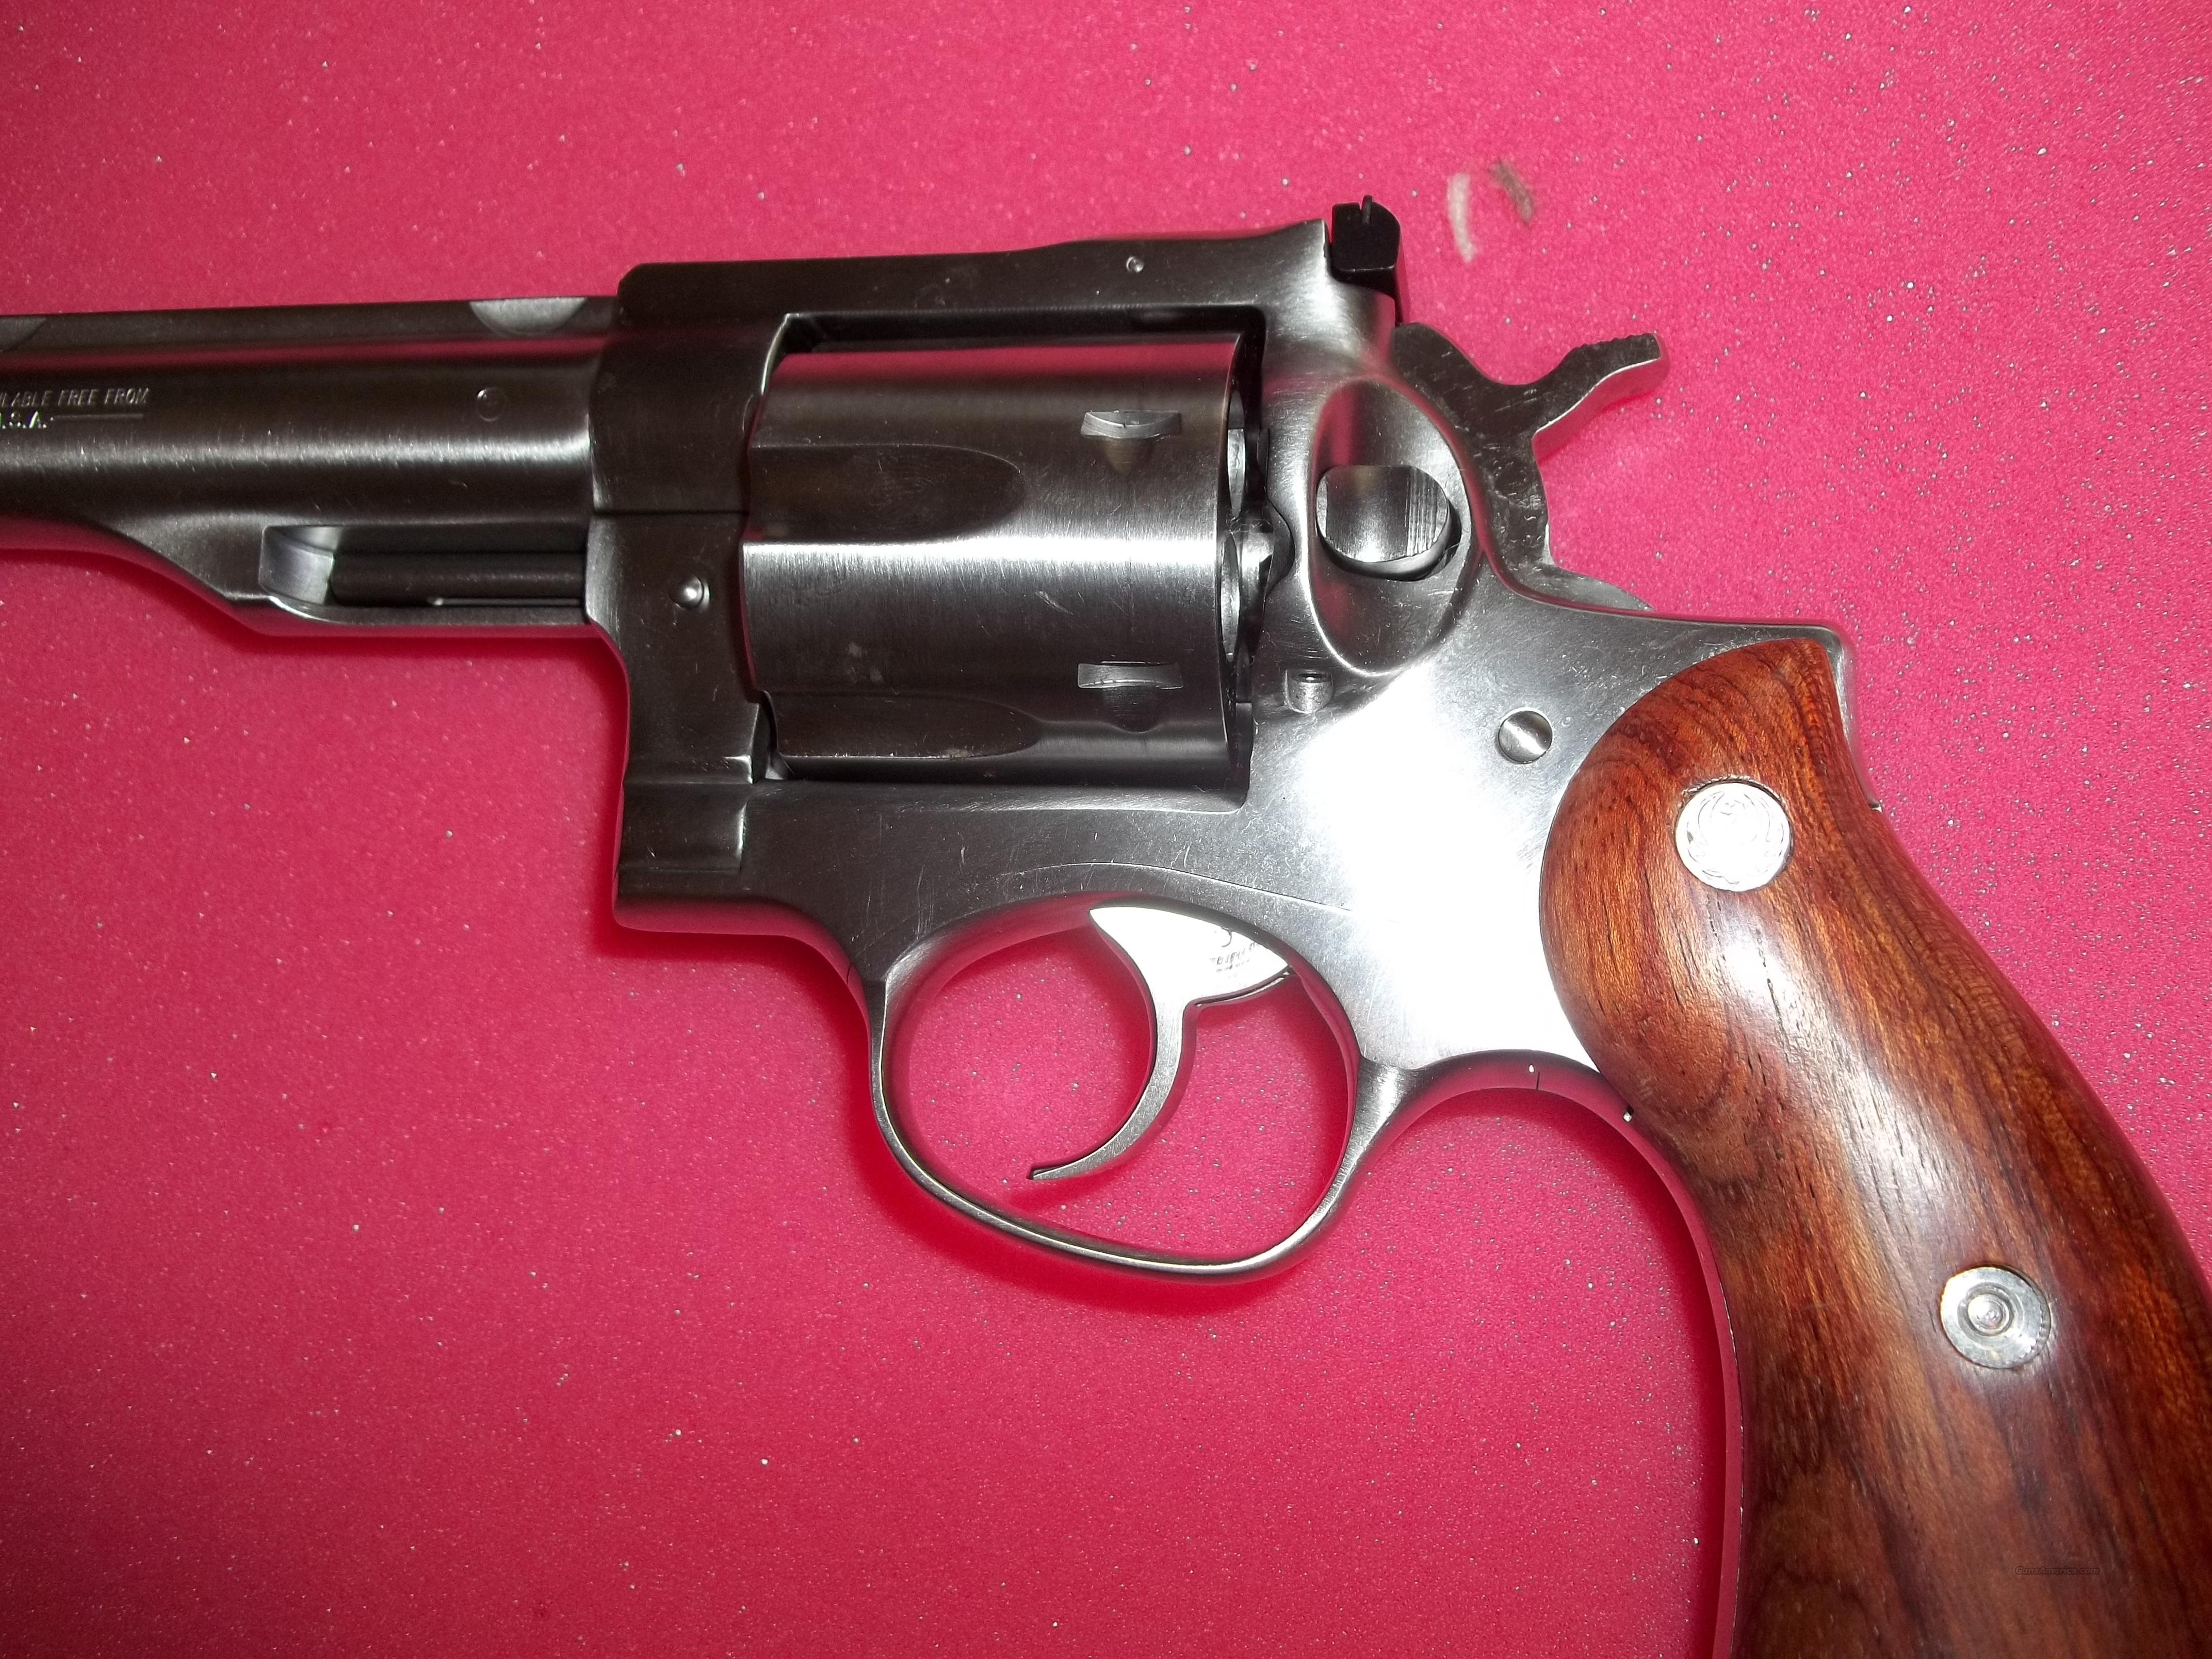 Ruger .44 Magnum Redhawk 7 1/2 inch Stainless   Guns > Pistols > Ruger Double Action Revolver > Redhawk Type